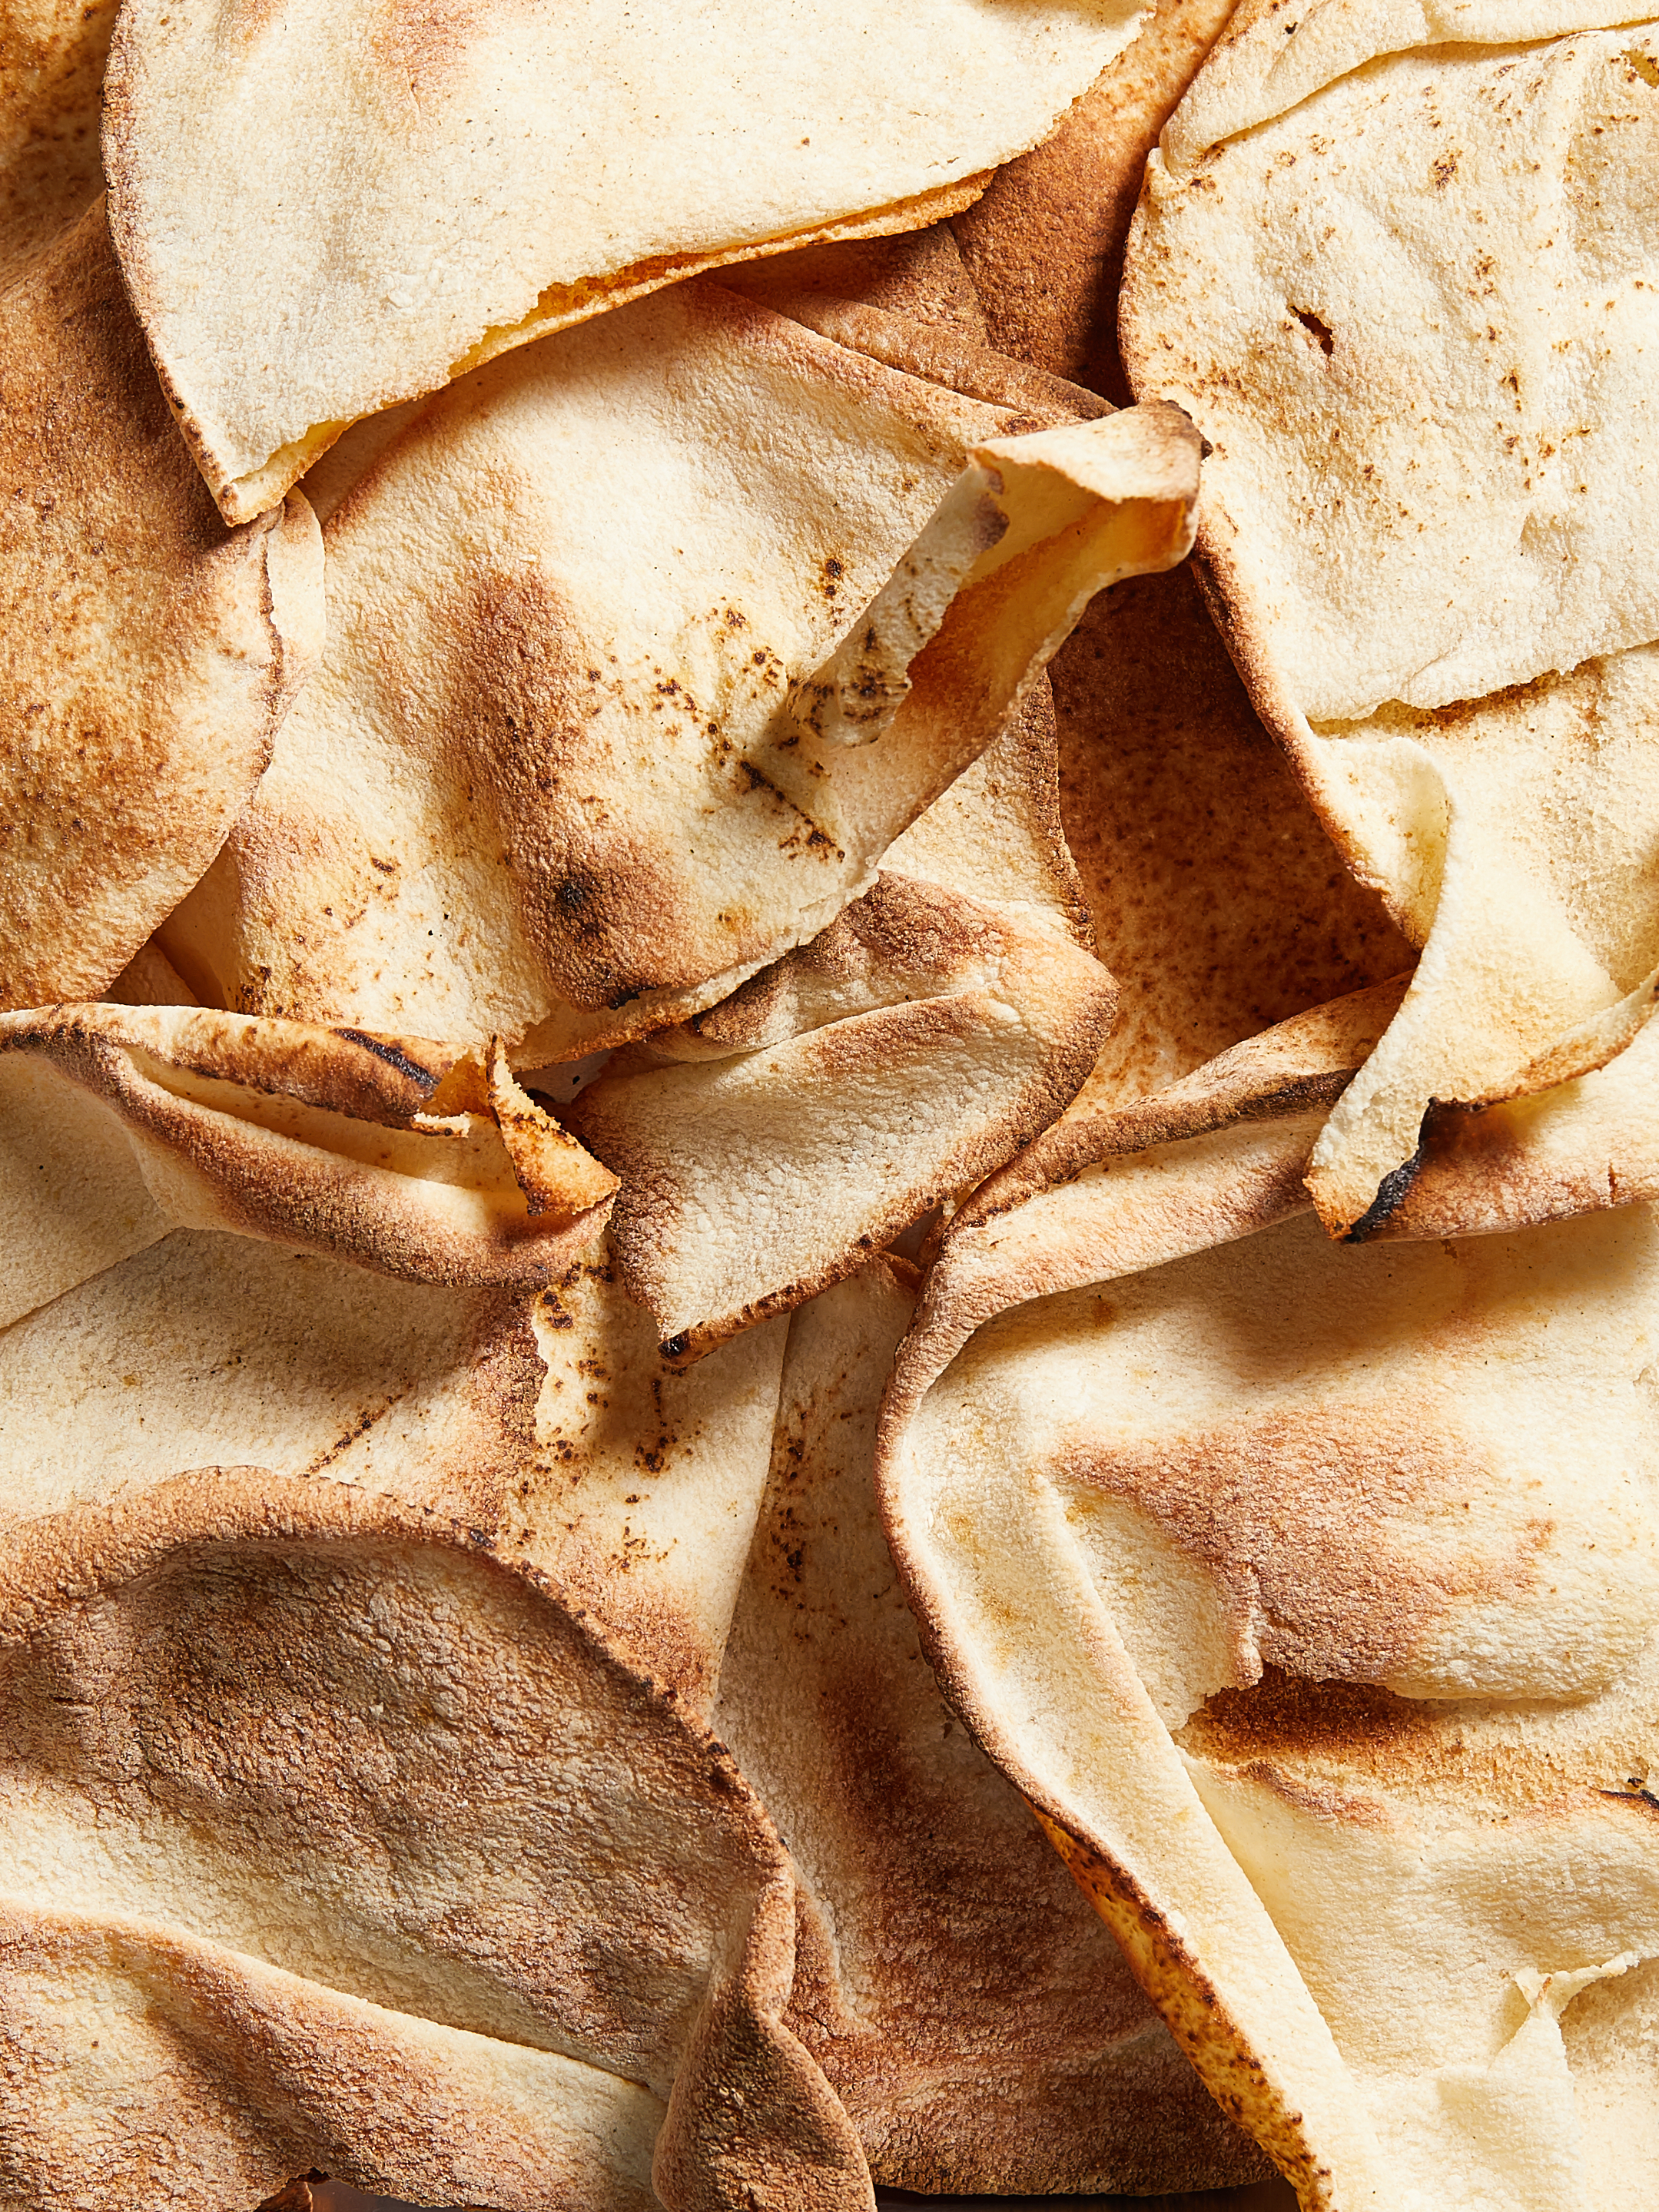 TOASTED PITA BREAD